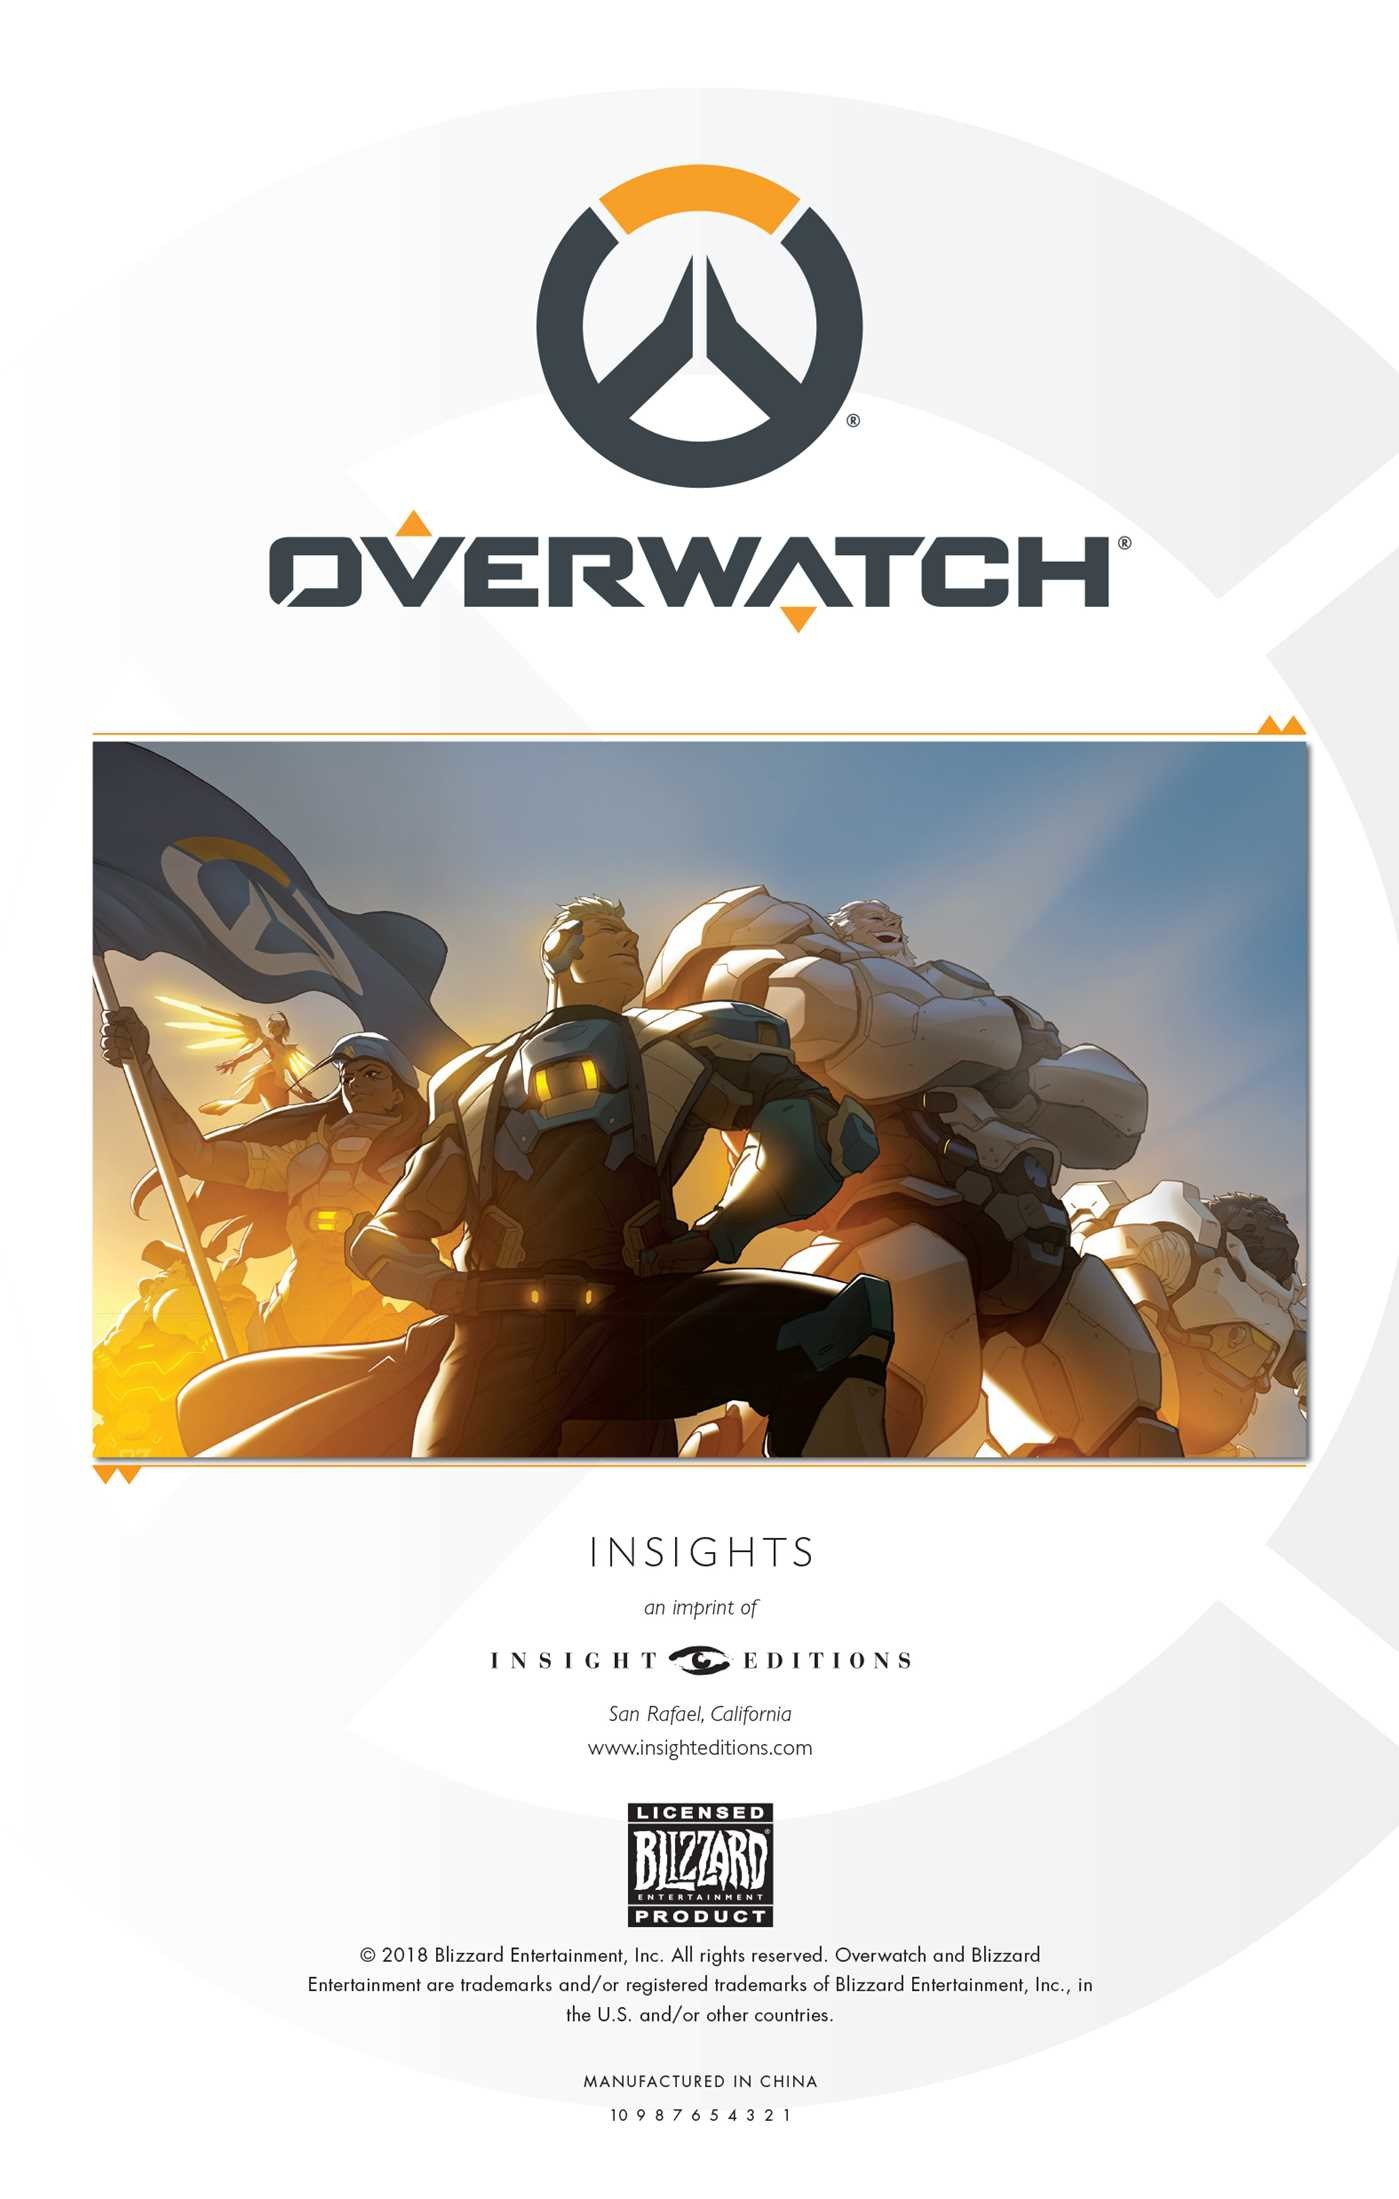 Overwatch hardcover ruled journal with pen 9781683835387.in05